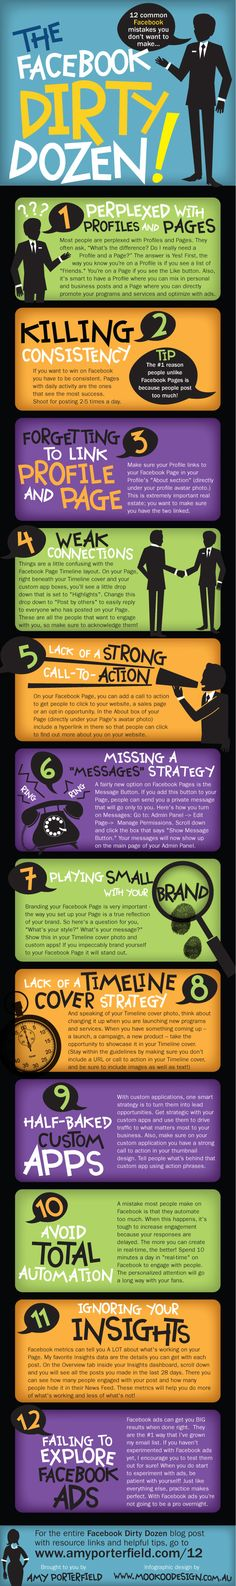 12 Facebook mistakes - original posts by Amy Porterfield put in a infographic